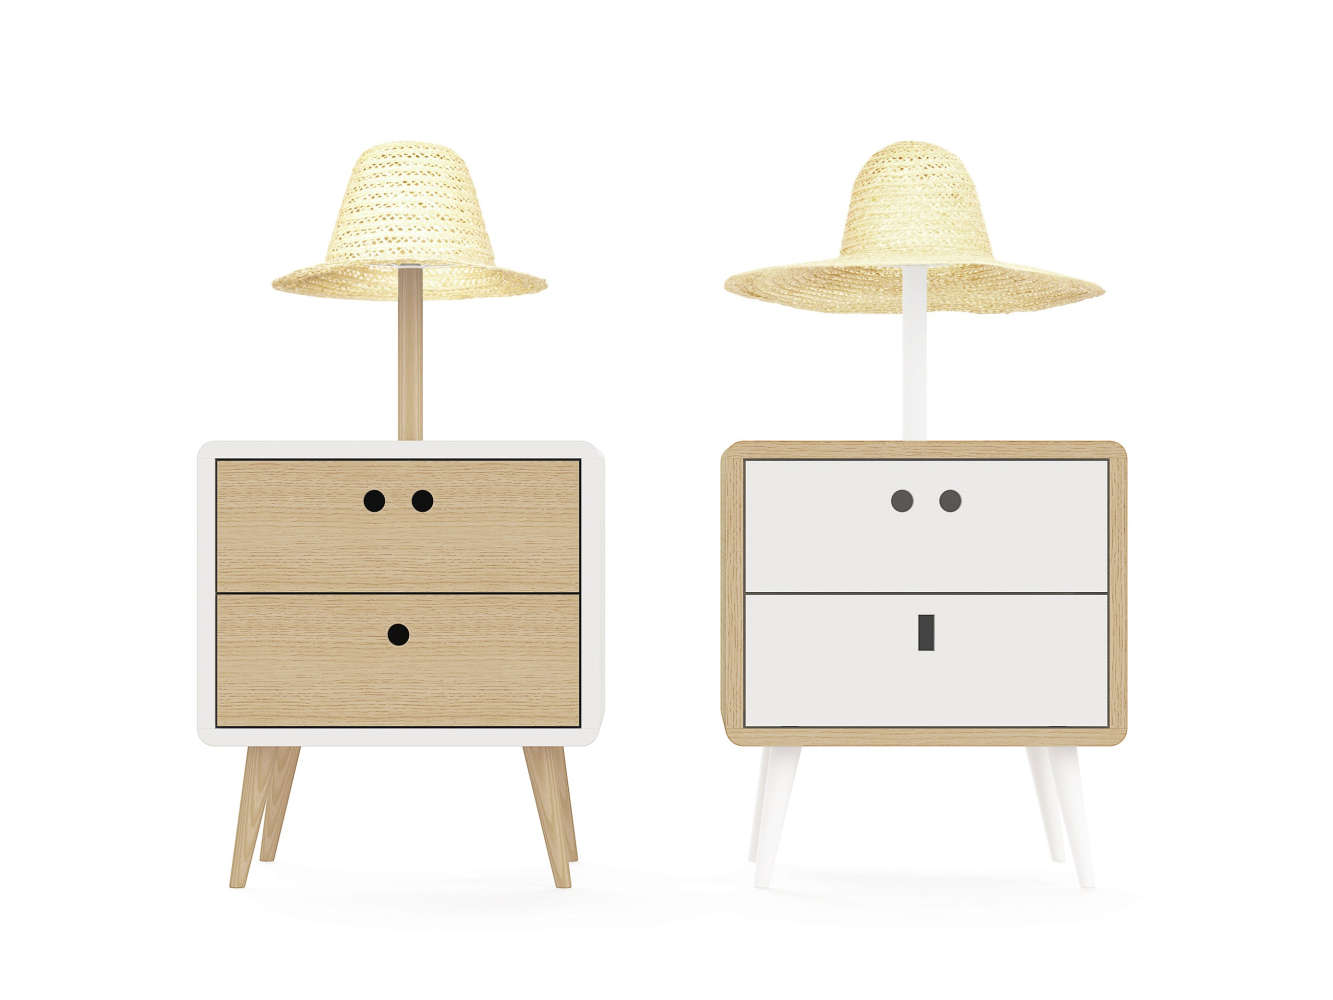 Nightstand with lampshade resembling a straw hat attached